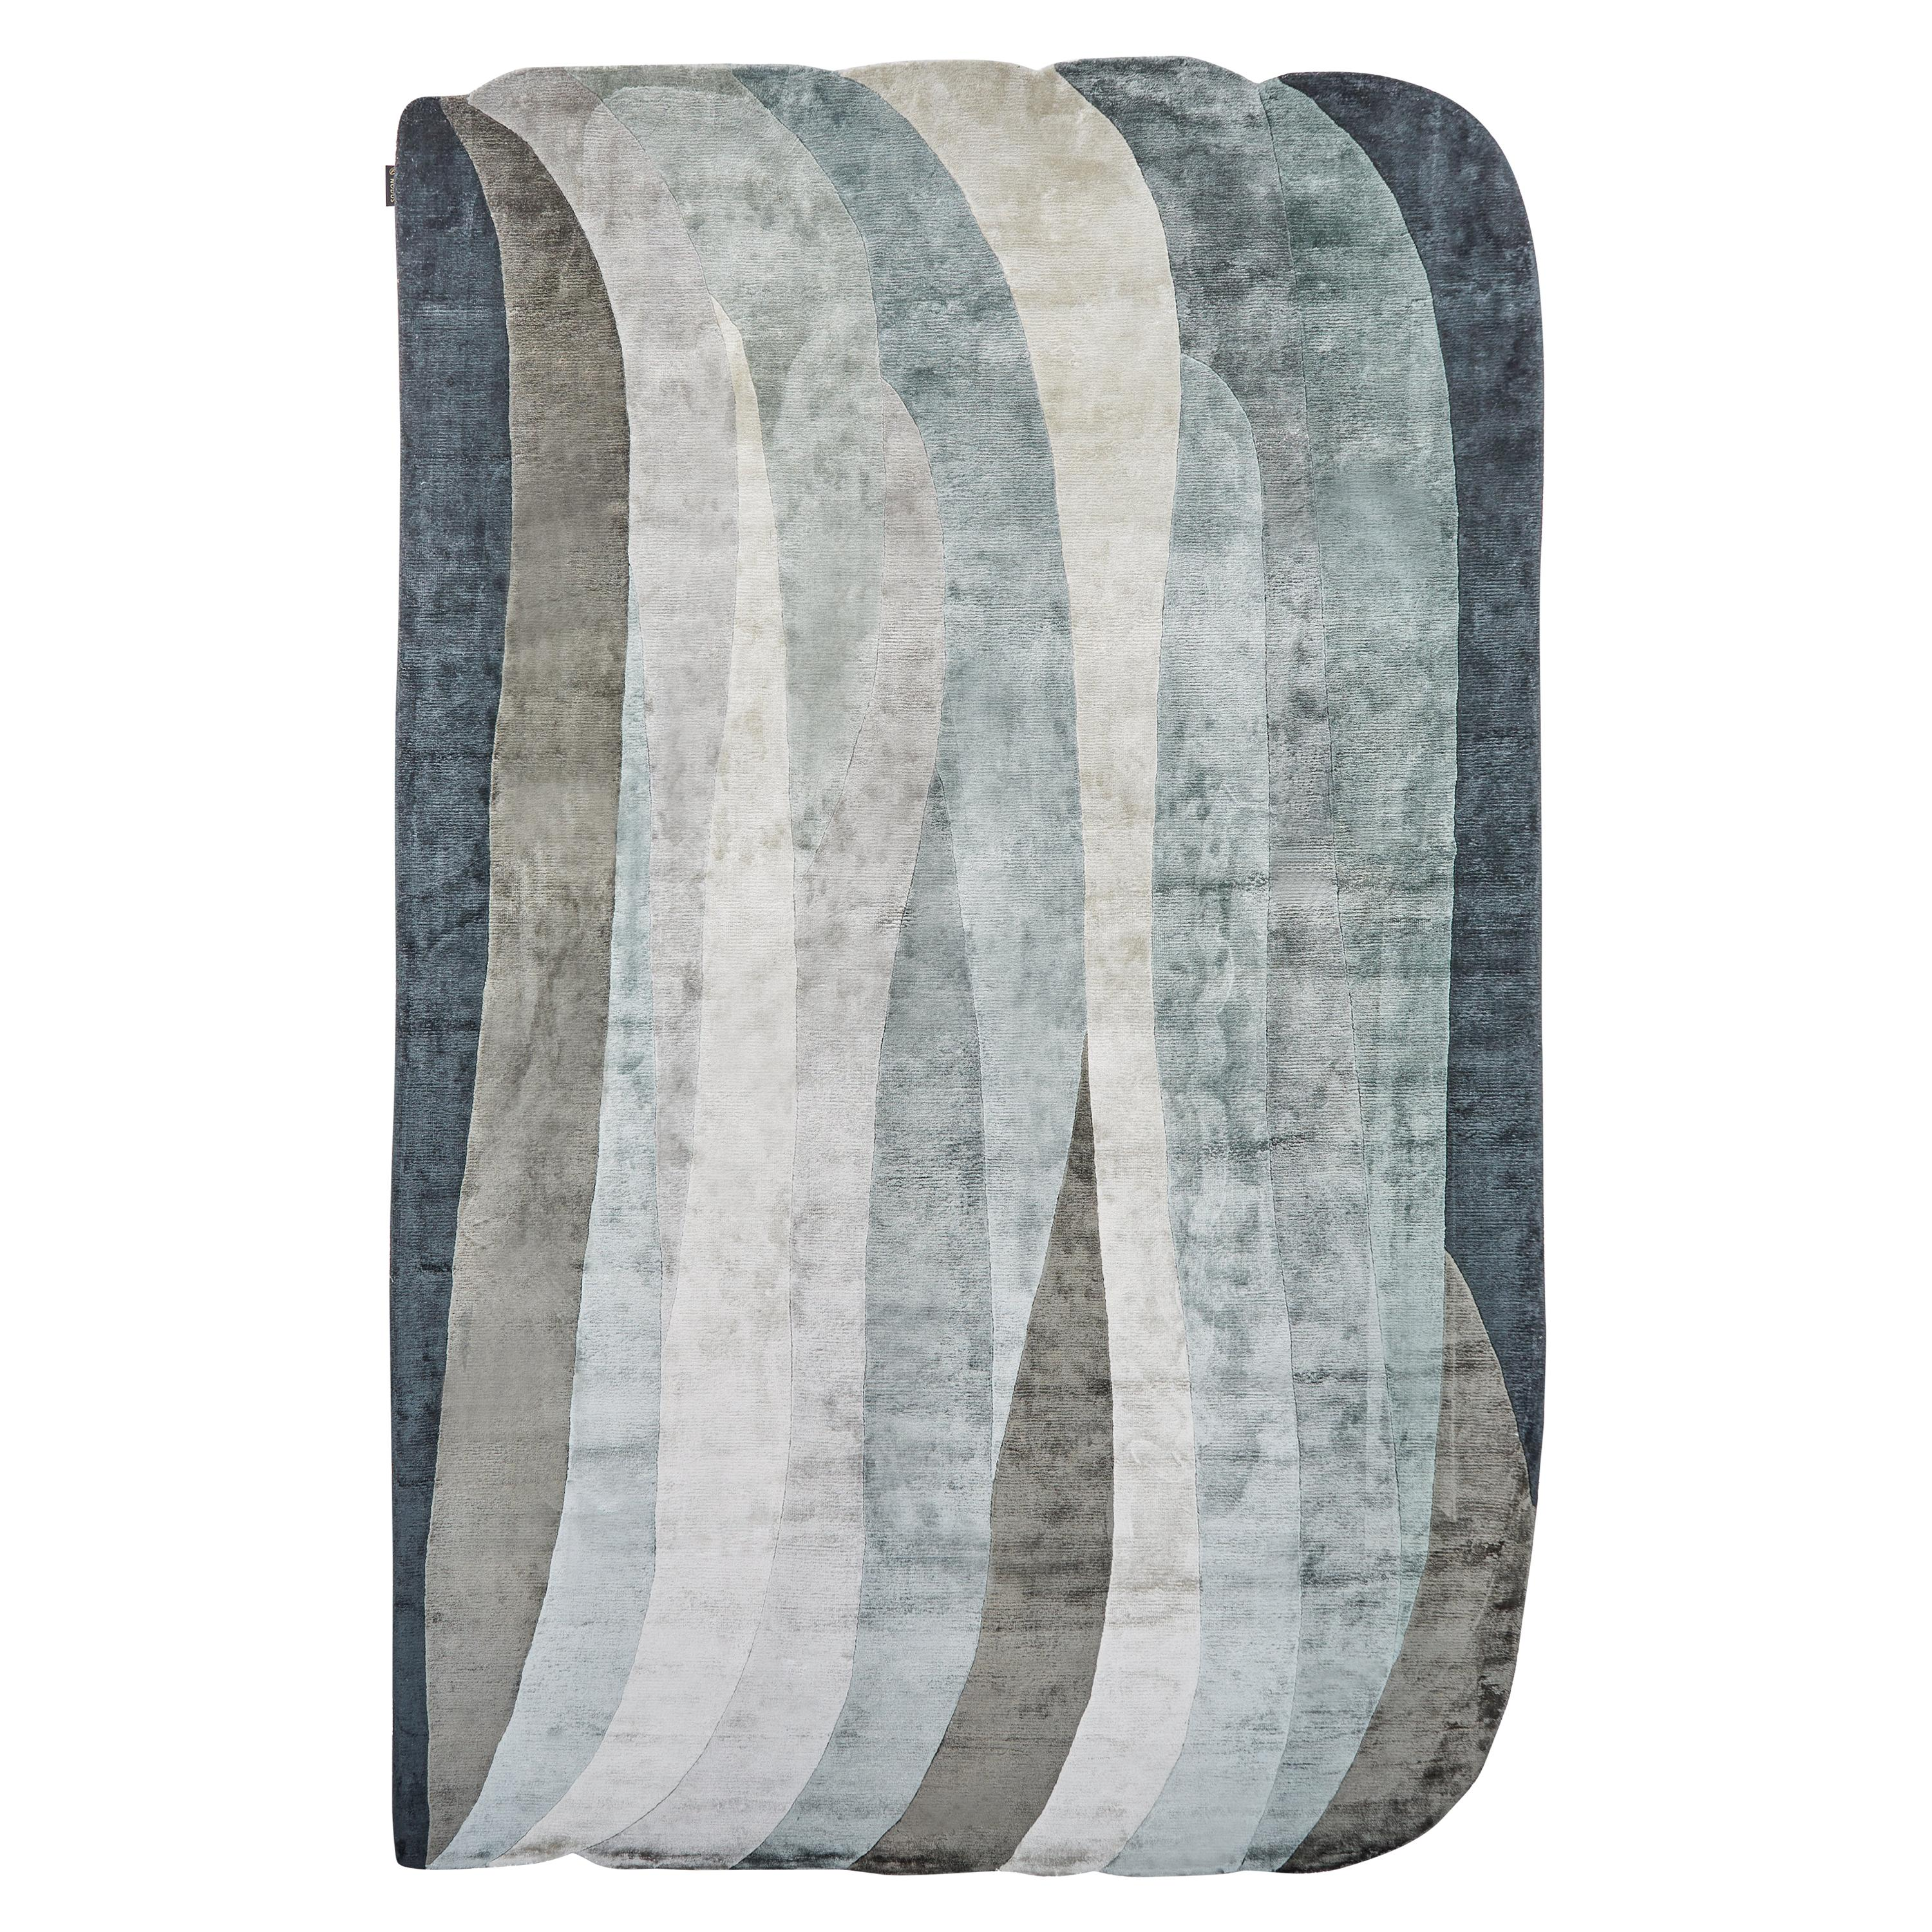 Scape Grey Carpet, Handknotted, Wool, 40 Knots, Constance Guisset